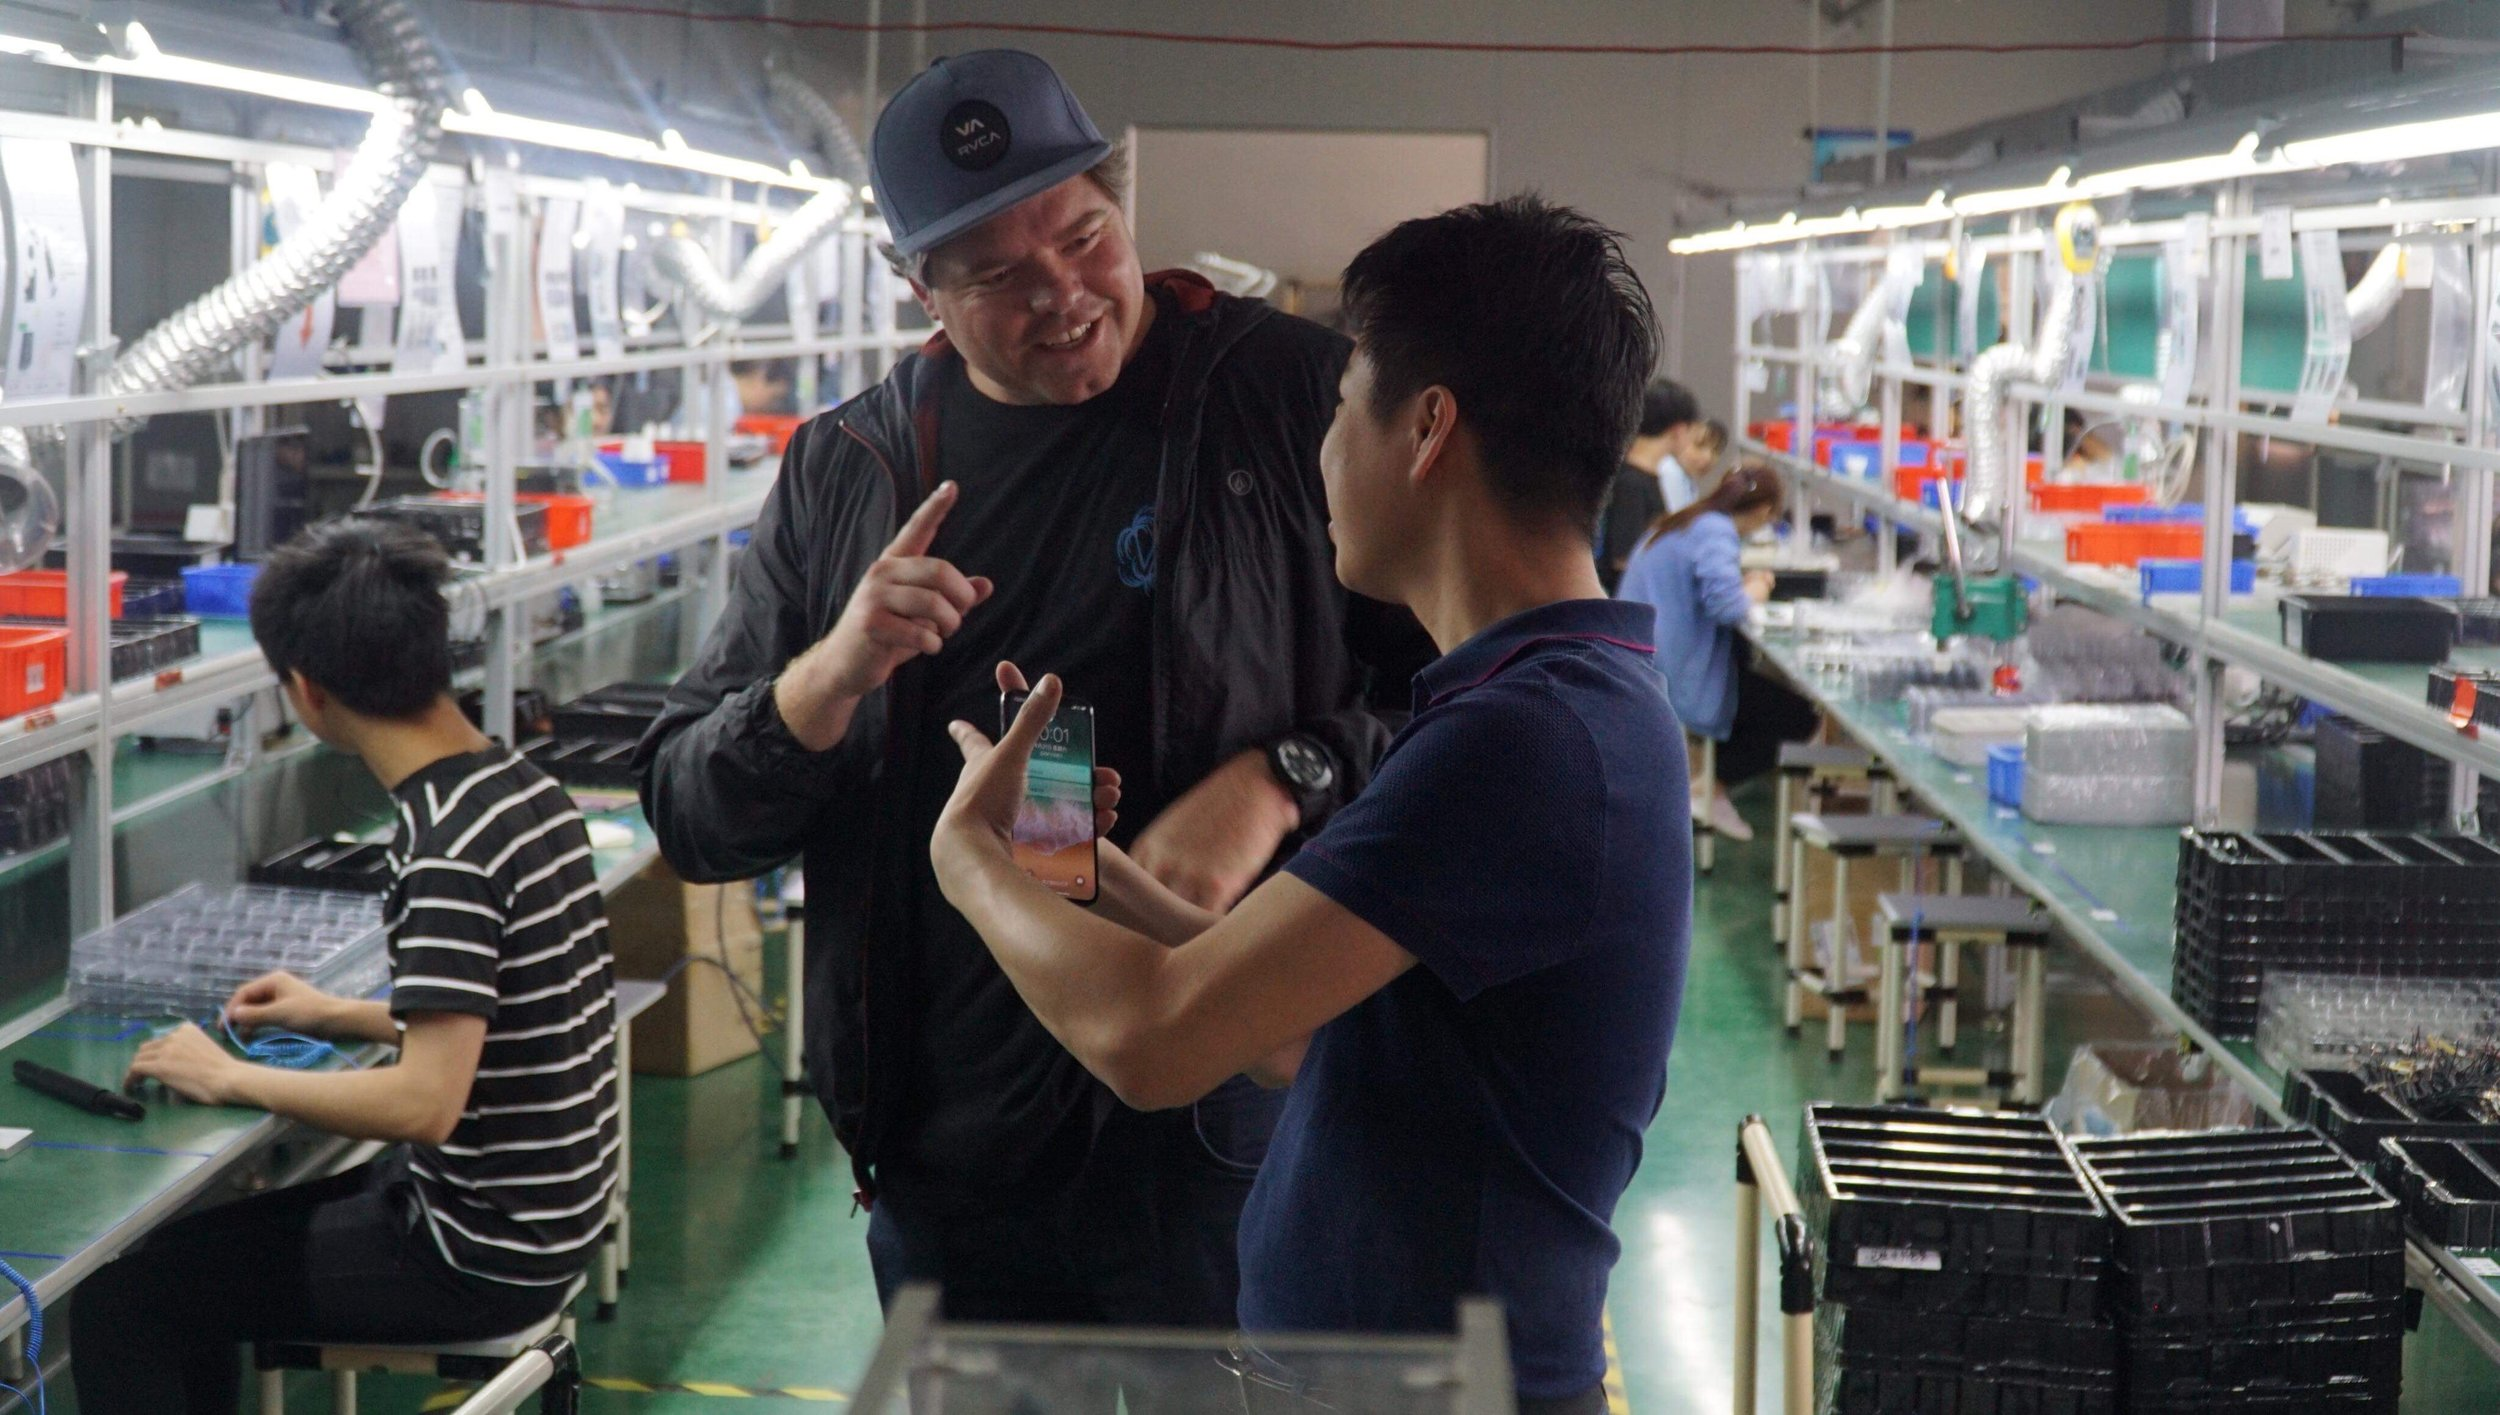 WE WORK DIRECTLY WITH THE OWNERS OF FACTORIES - RICHIE NORTON WORKING ON A PROJECT WITH A FACTORY OWNER